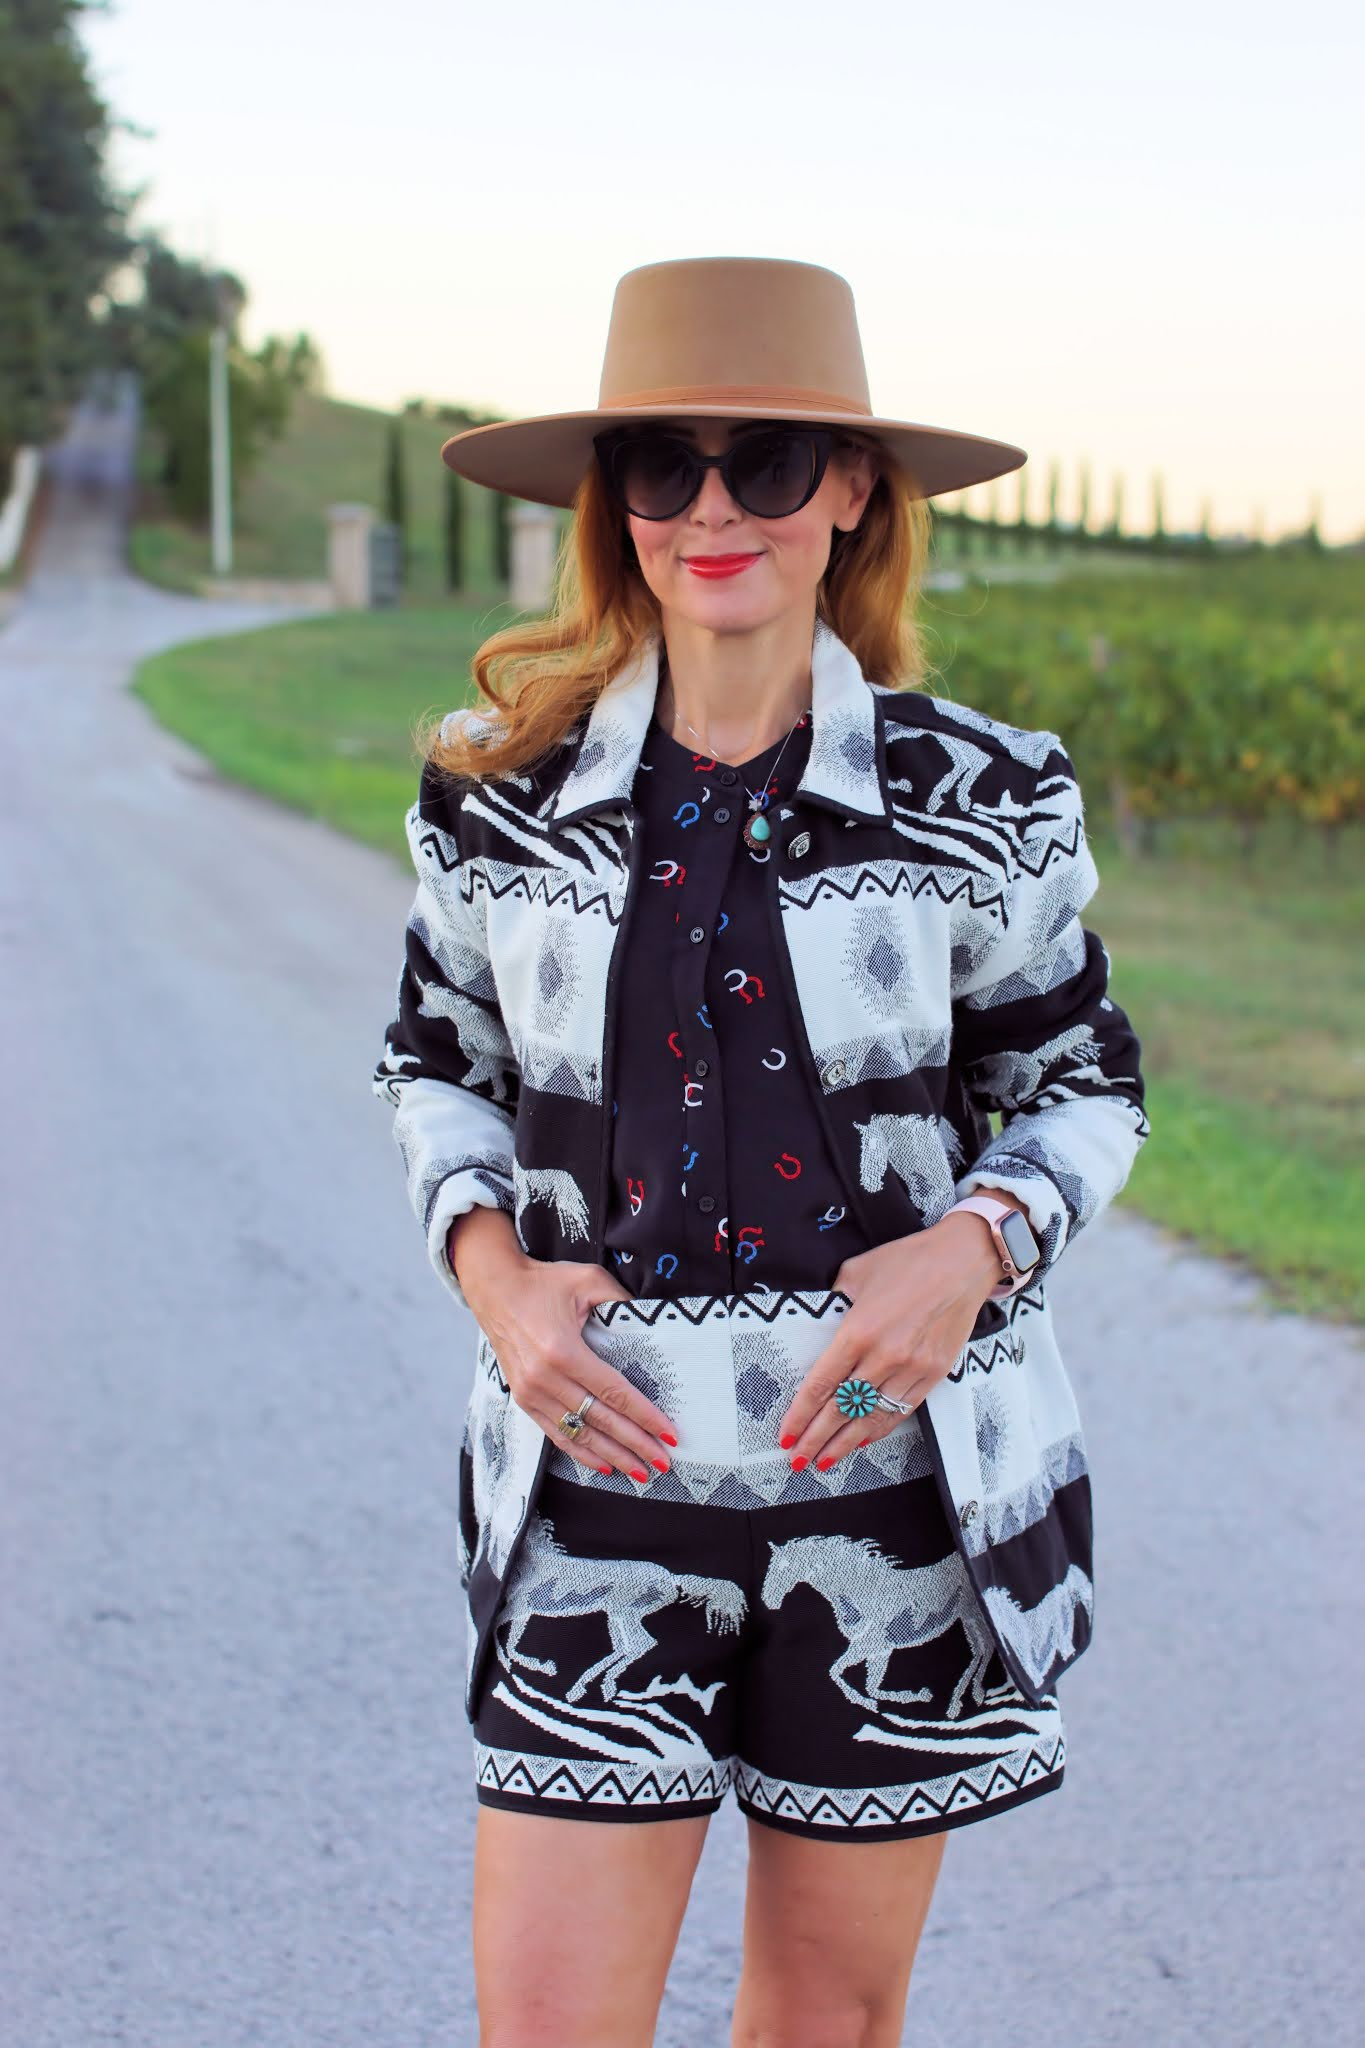 Western jacquard jackets with horse print